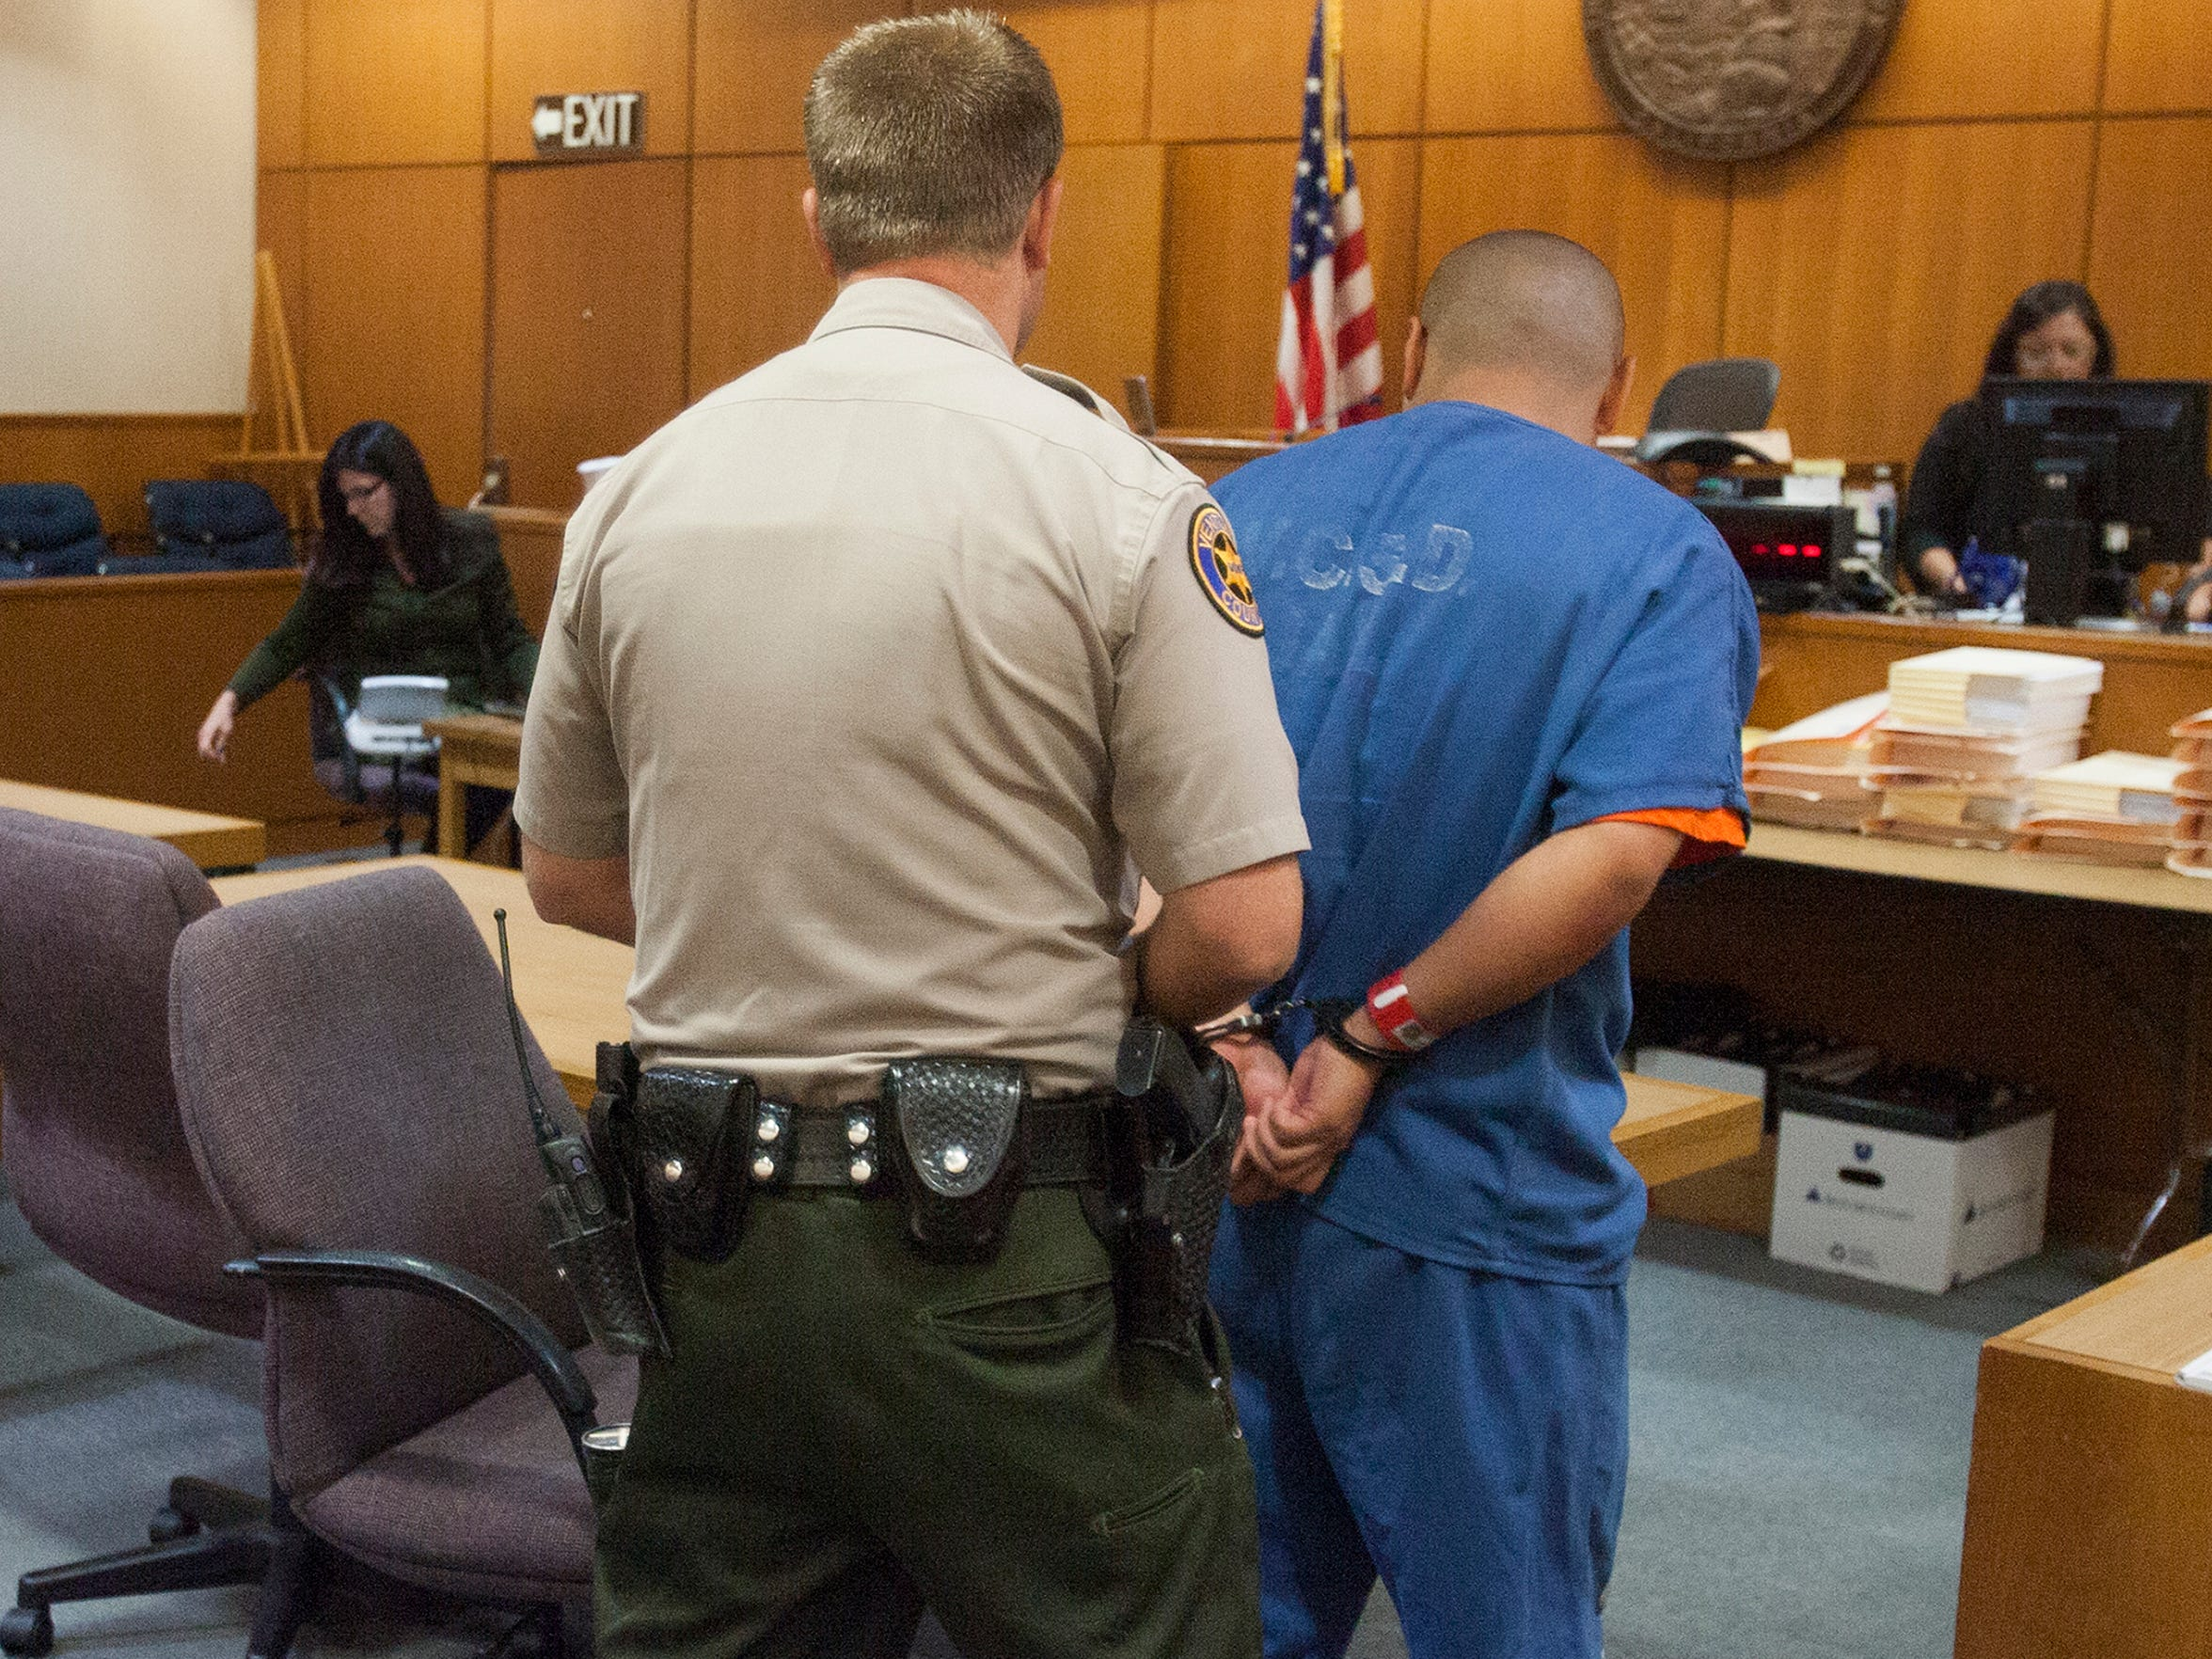 Joseph Salas, right, is handcuffed Aug. 21 to be transported back to the Ventura County Jail after a hearing in Ventura County Superior Court. Salas, 18, of Port Hueneme, was challenging his inclusion on an injunction against the Southside Chiques street gang in Oxnard. The judge in the case decided Salas could be kept on the gang injunction.